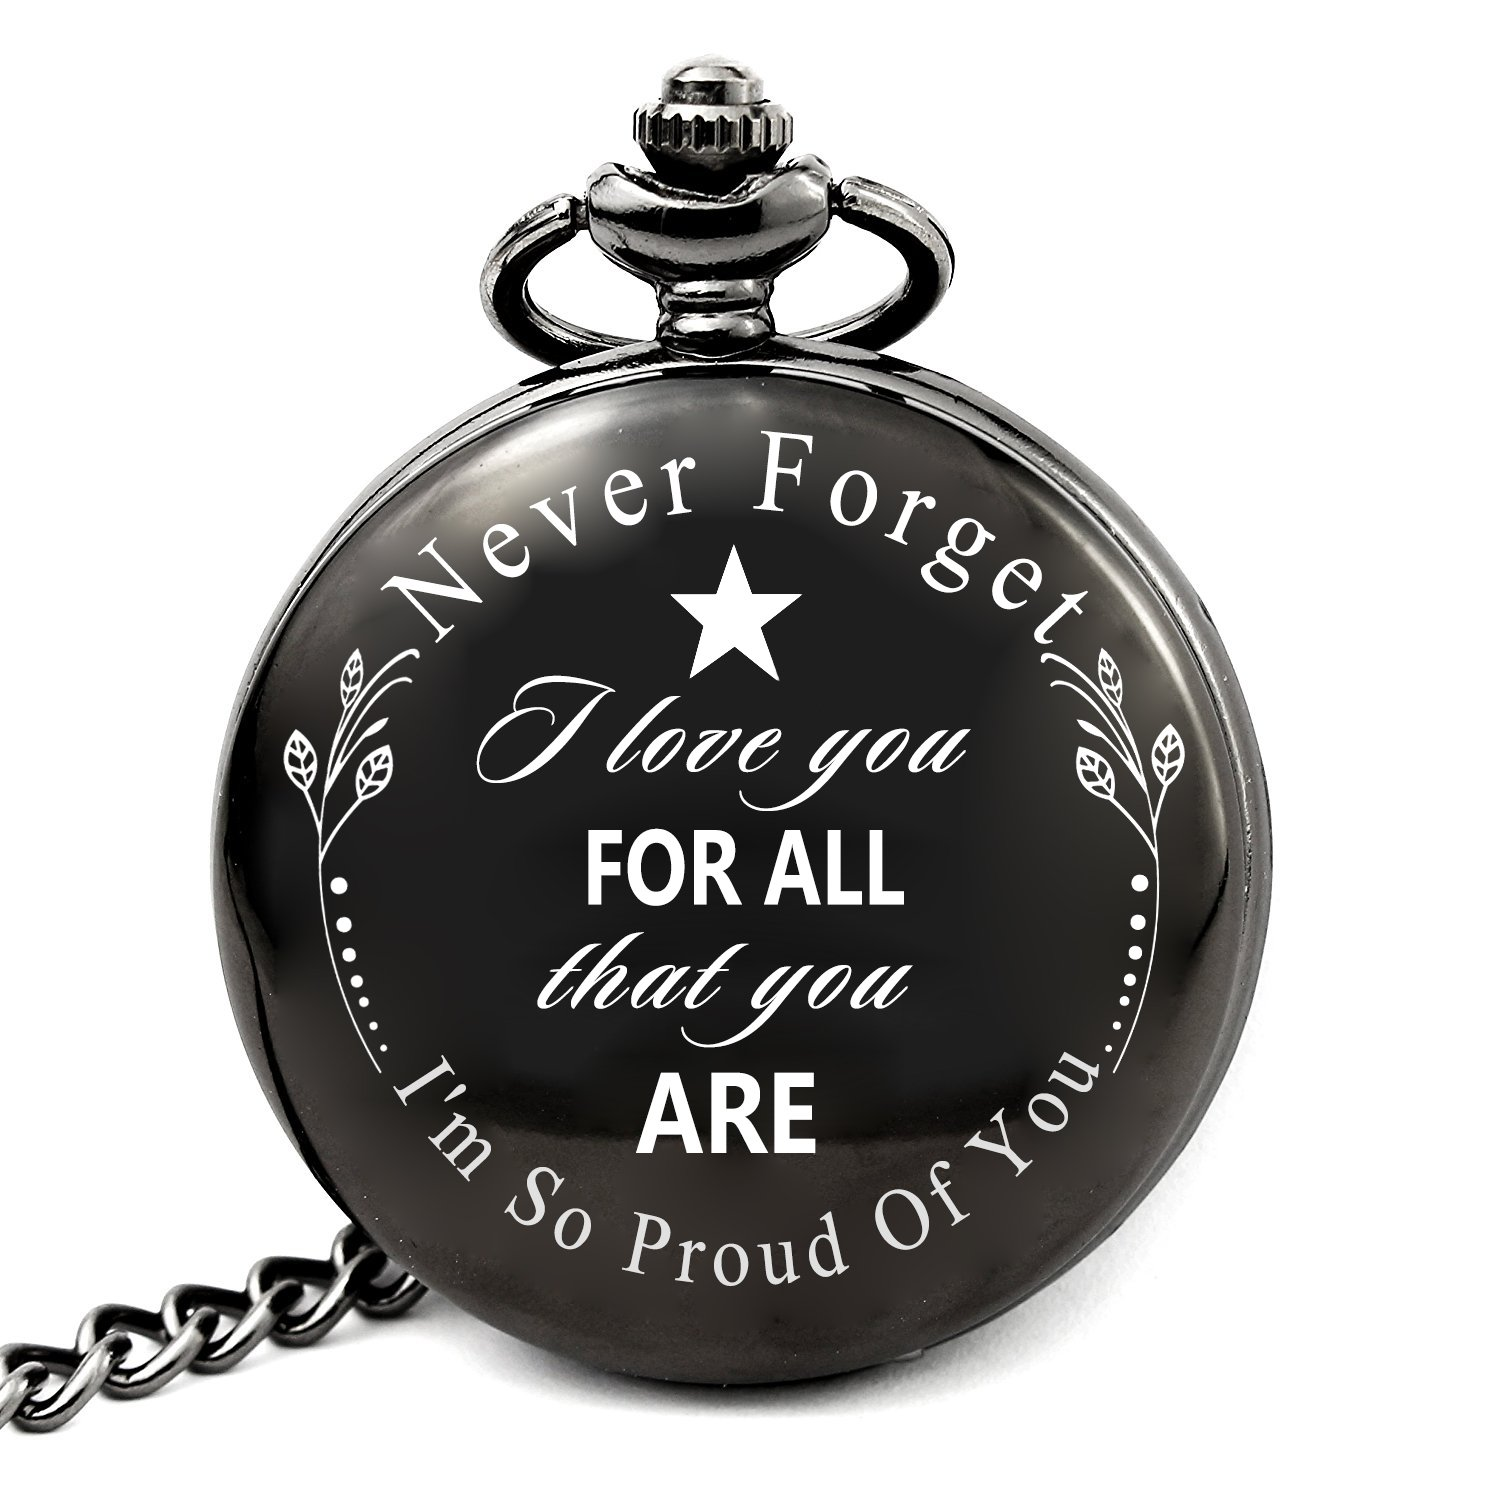 LEVONTA Gifts for Son Husband Dad Grandpa Men of All Ages Engraved Pocket Watch I Love You for All That You are I am So Proud of You